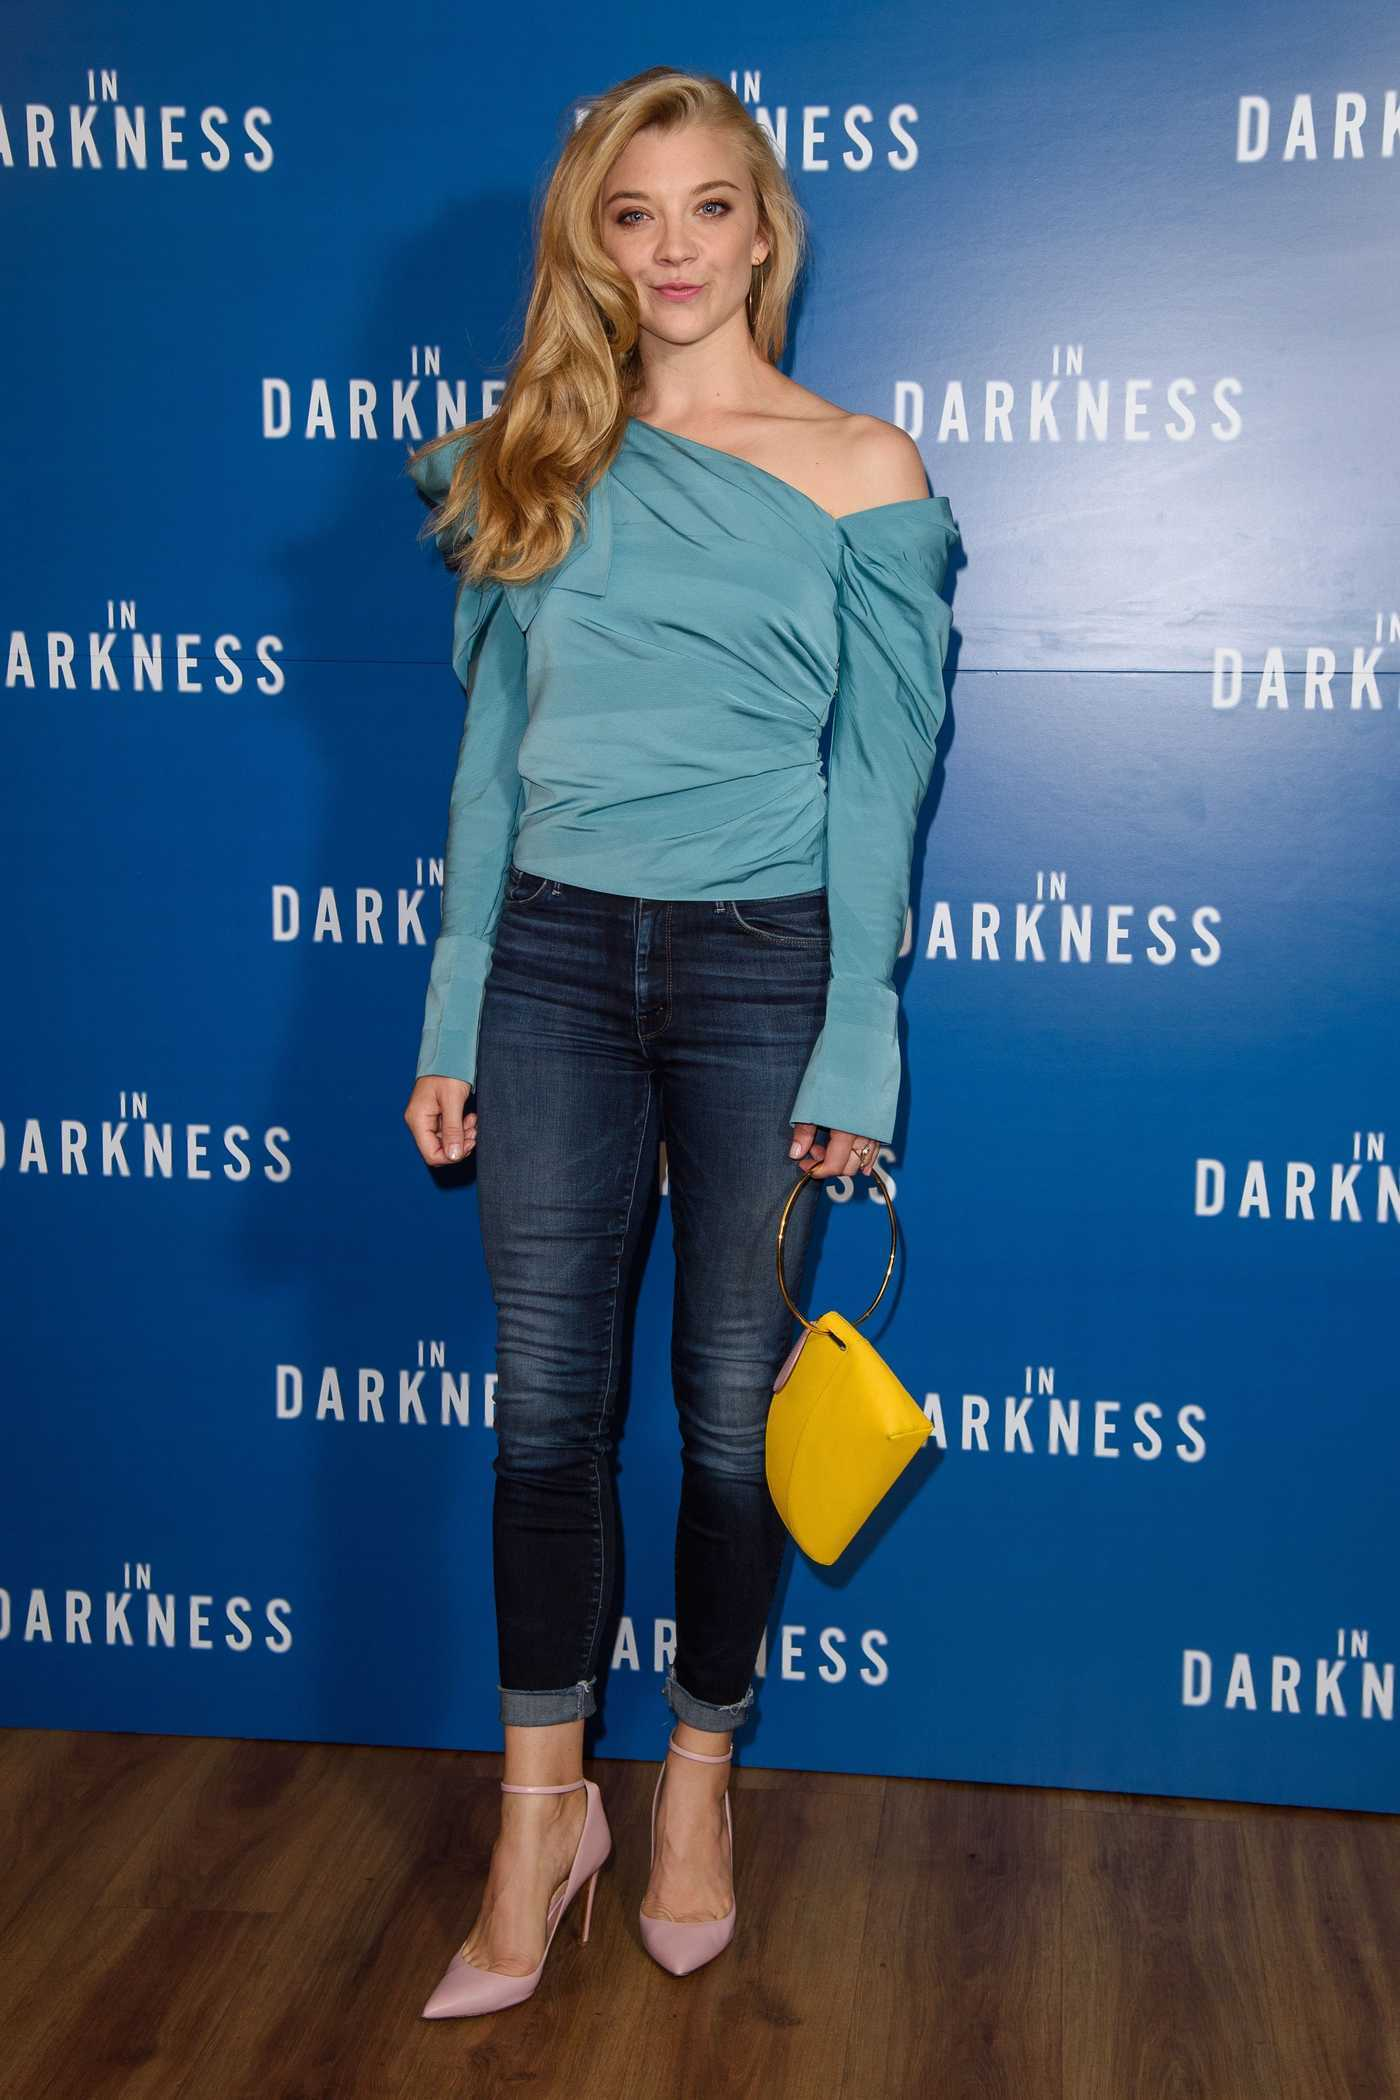 Natalie Dormer Attends In Darkness Photocall in London 07/03/2018